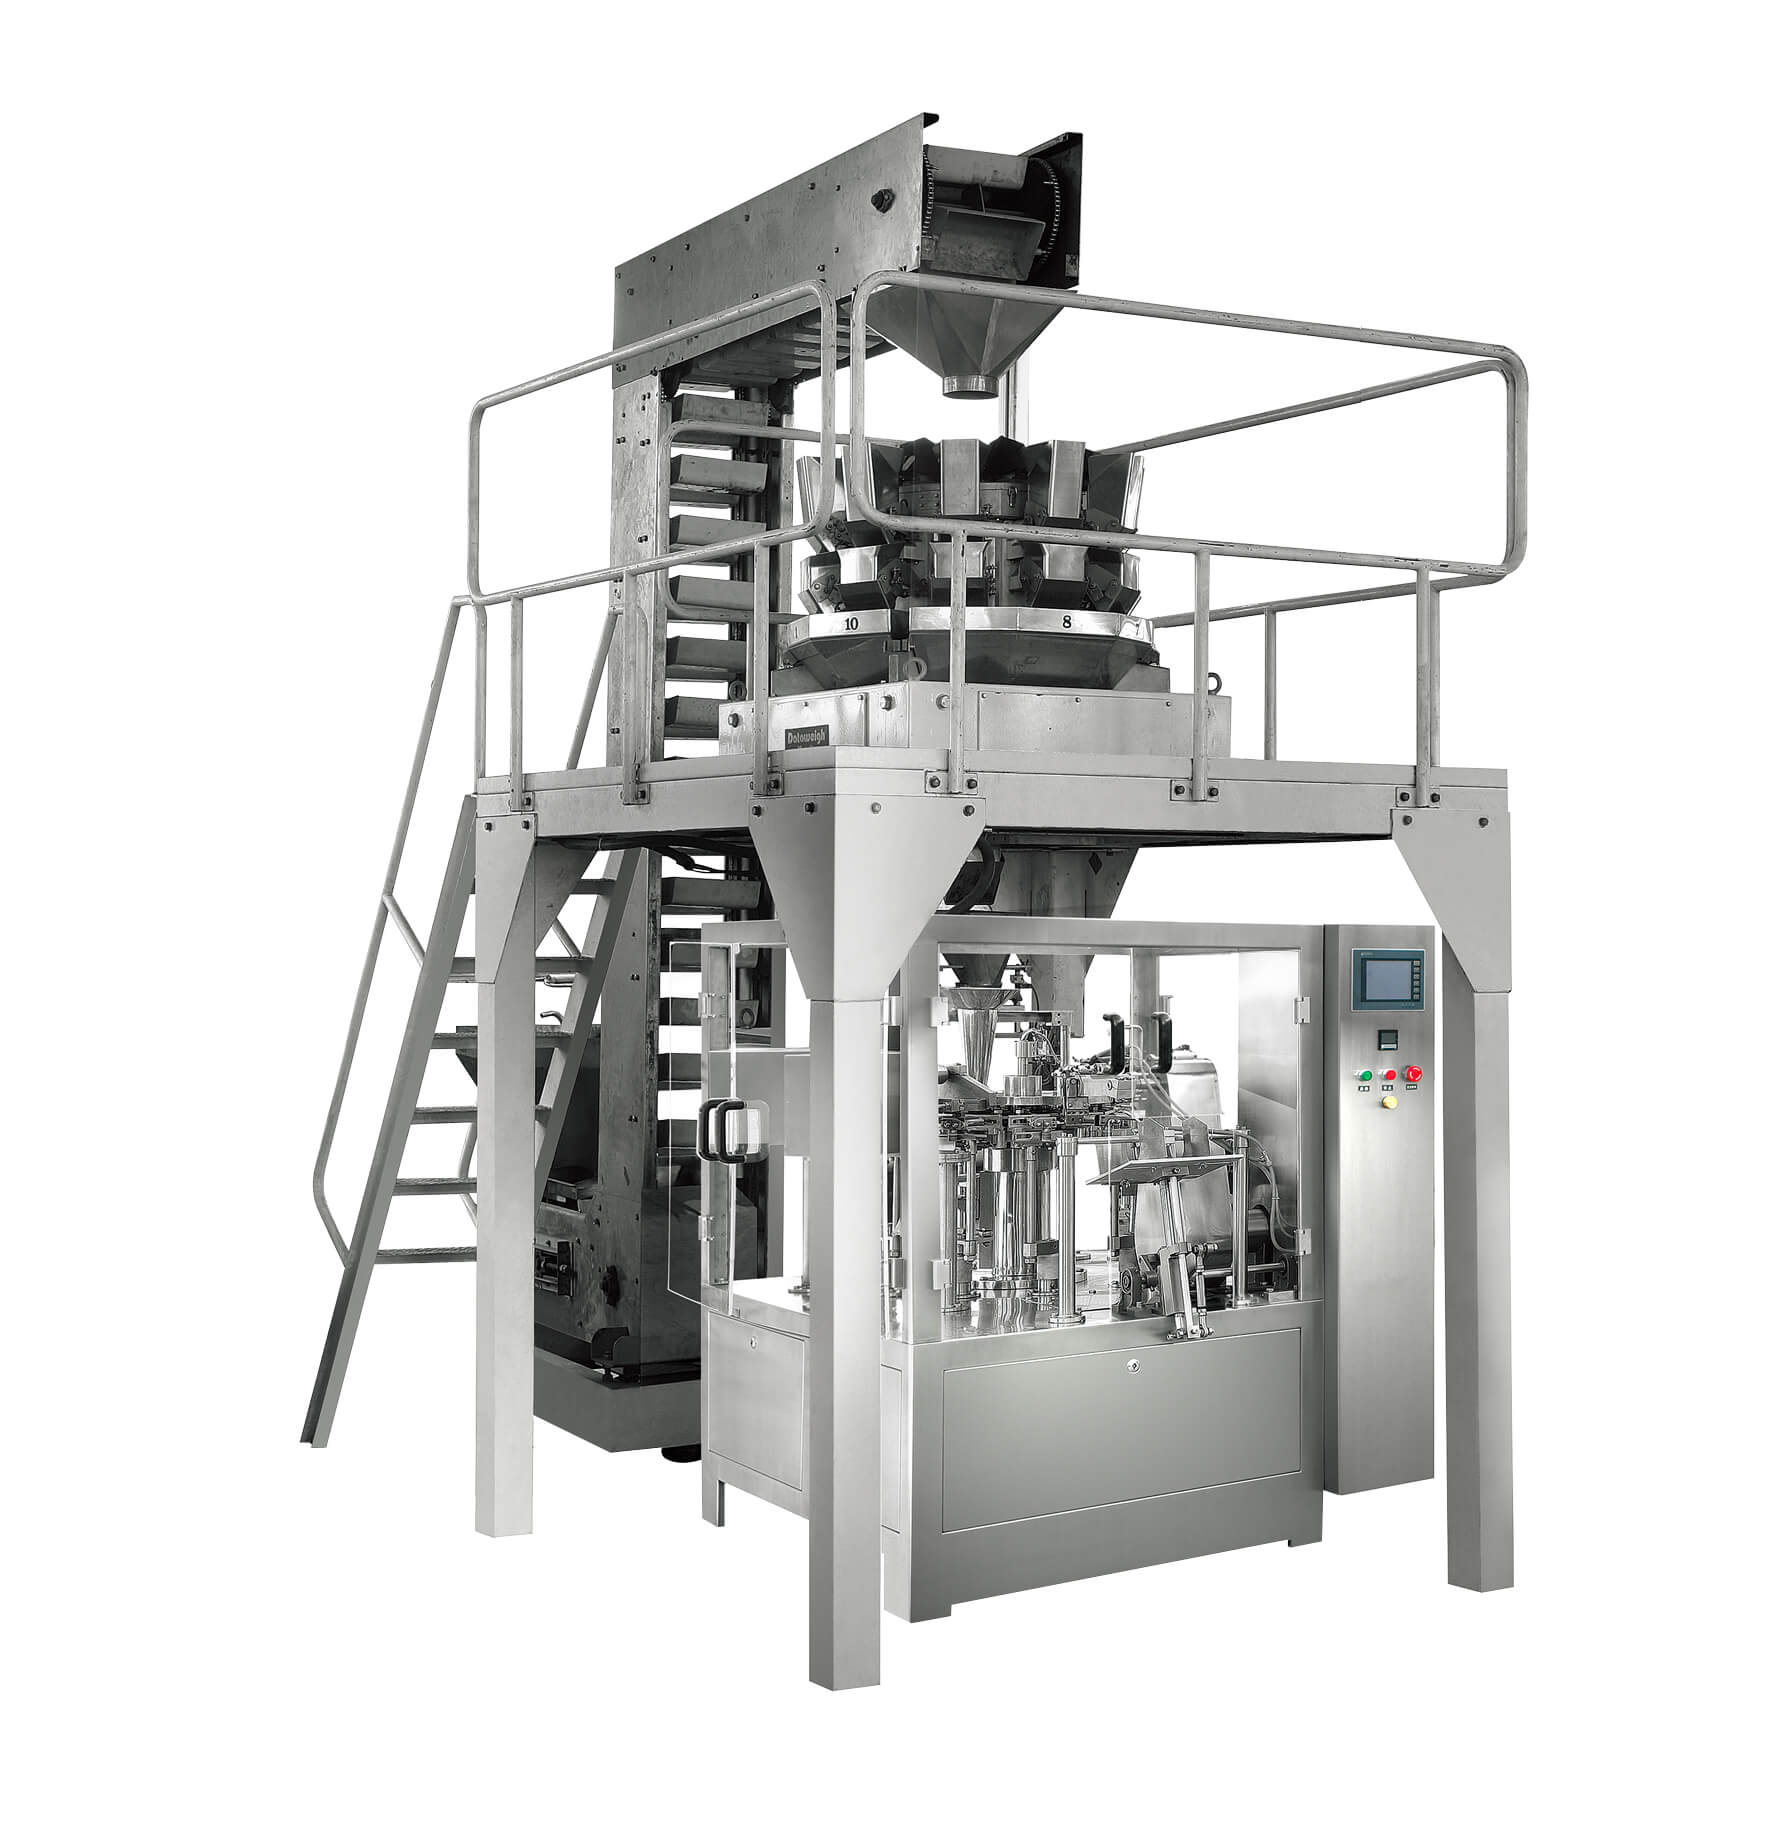 TS6200S Automatic Solid/Grain Rotary Weighing & Packaging Machine ...